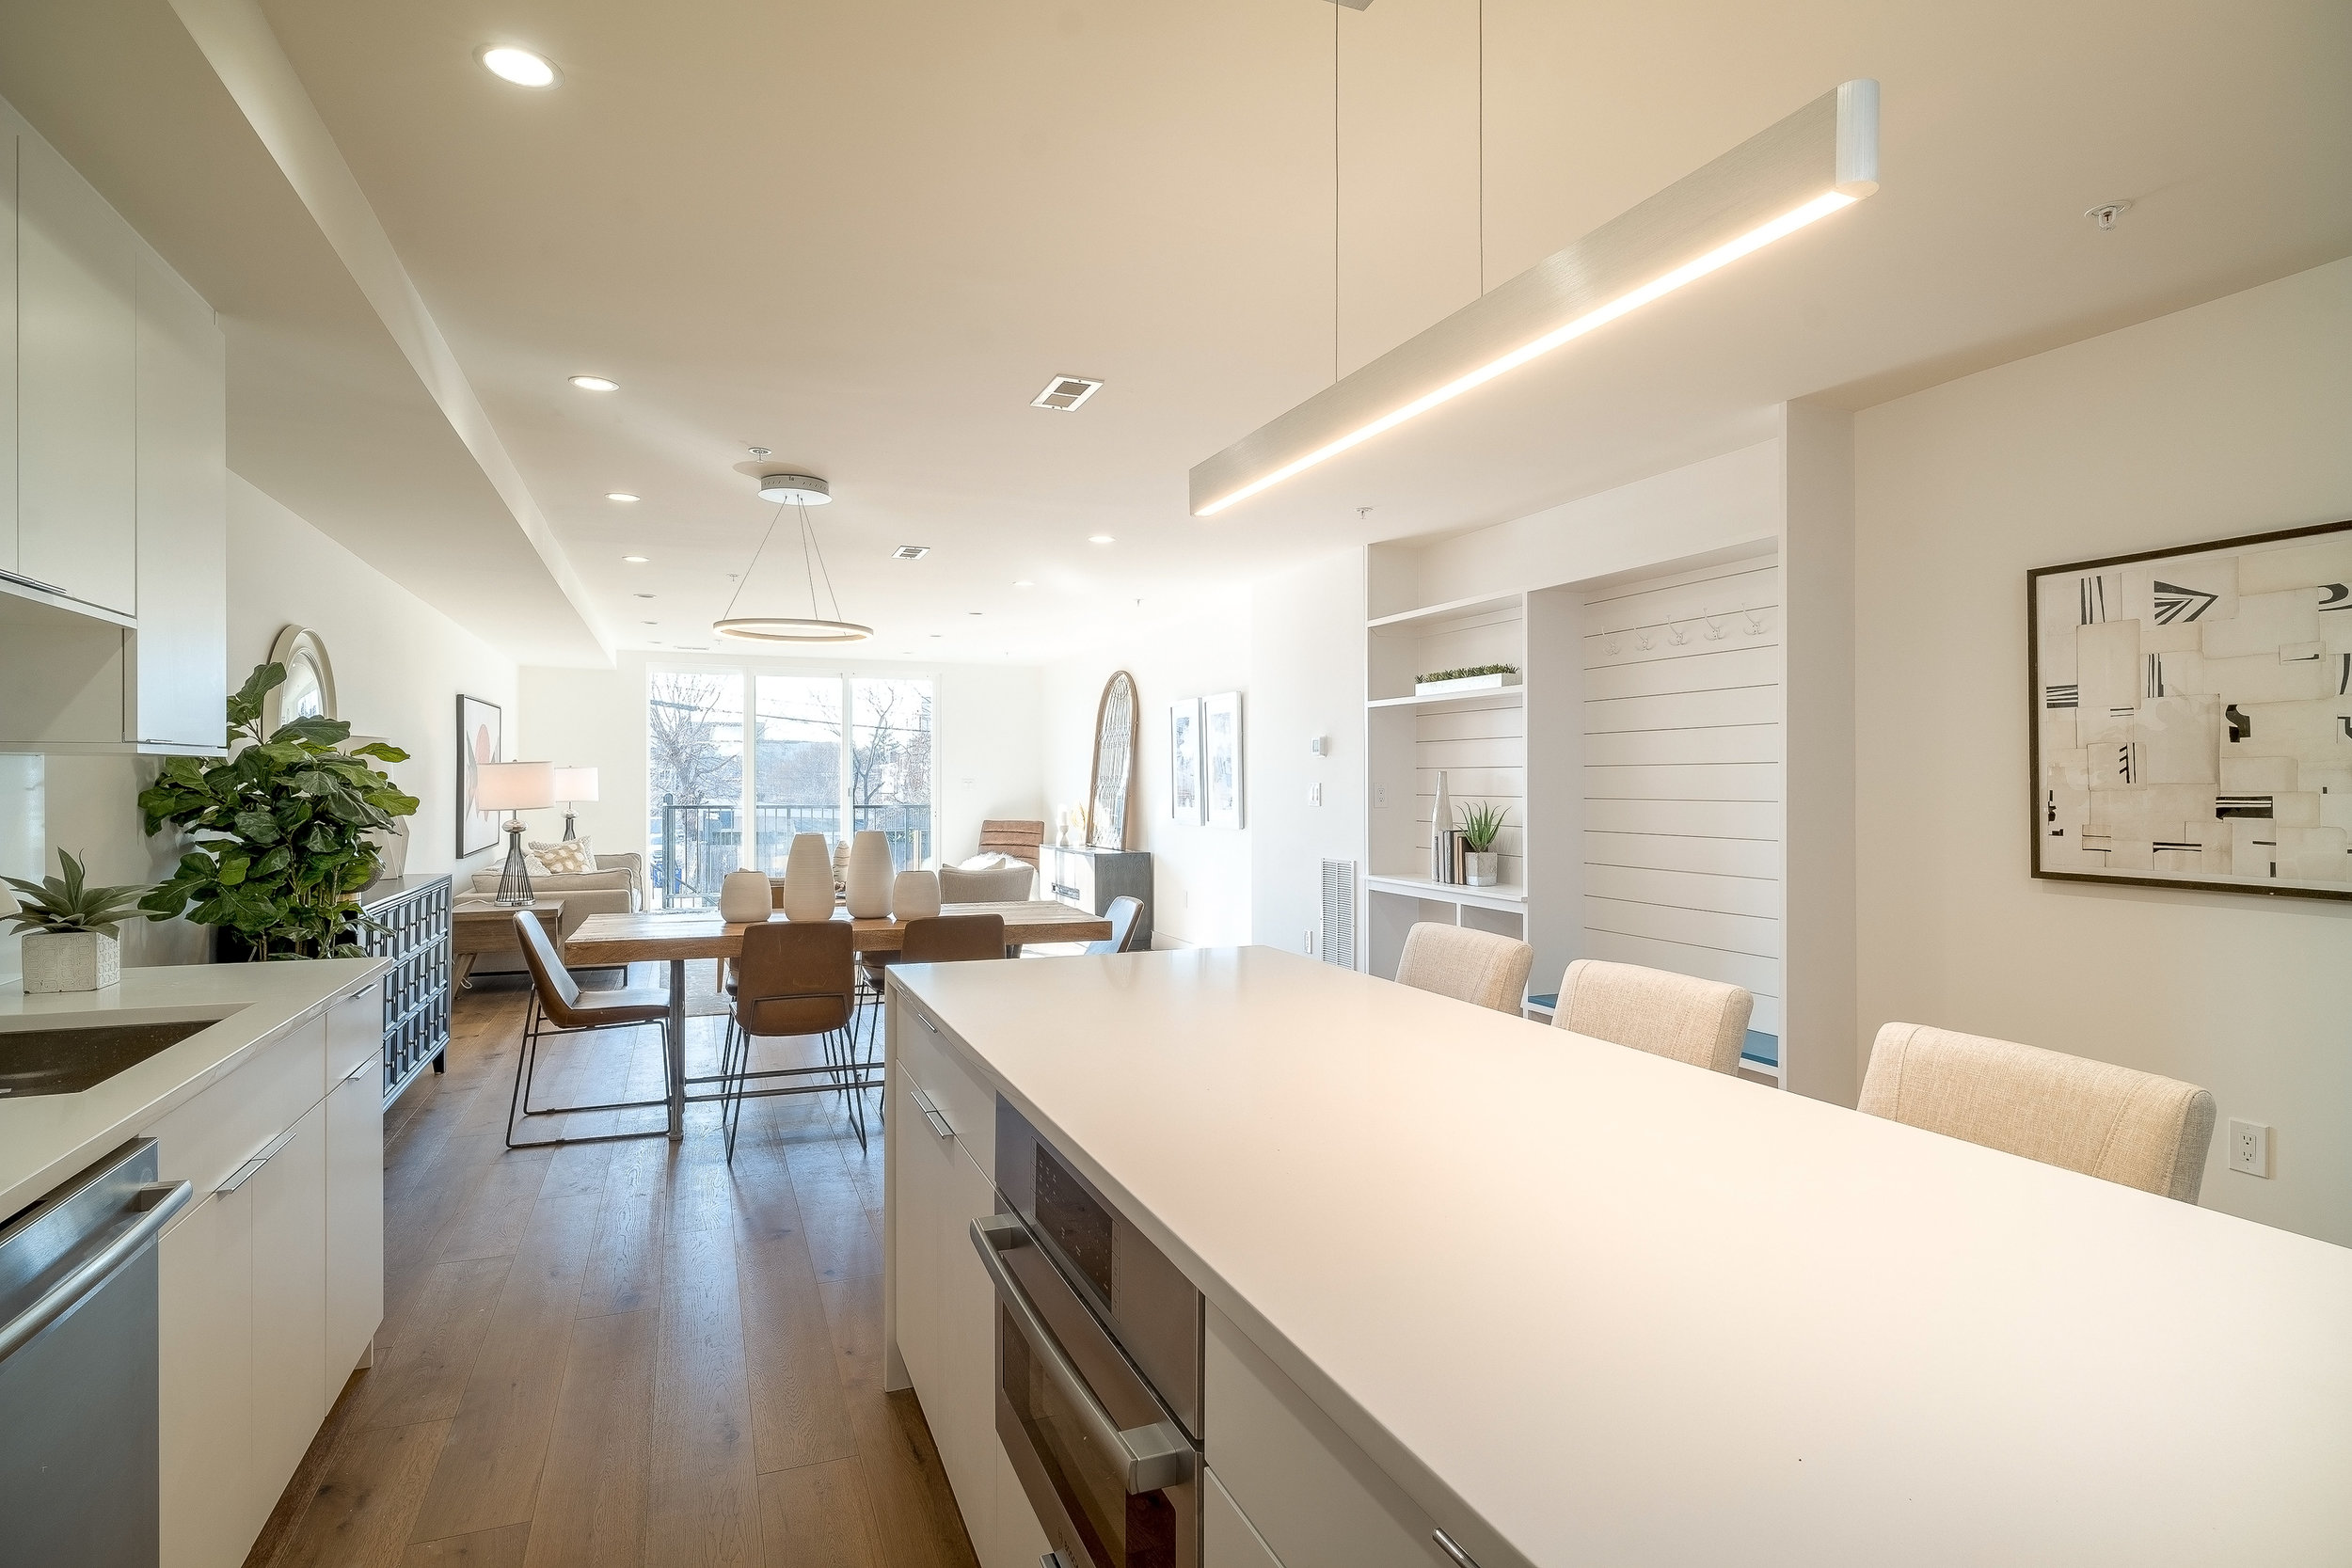 """Featured in Dwell Magazine - """"A multi-family property that is bound to turn heads, this newly completed Washington D.C. gem offers contemporary modernity in its architectural and interior stylings."""""""